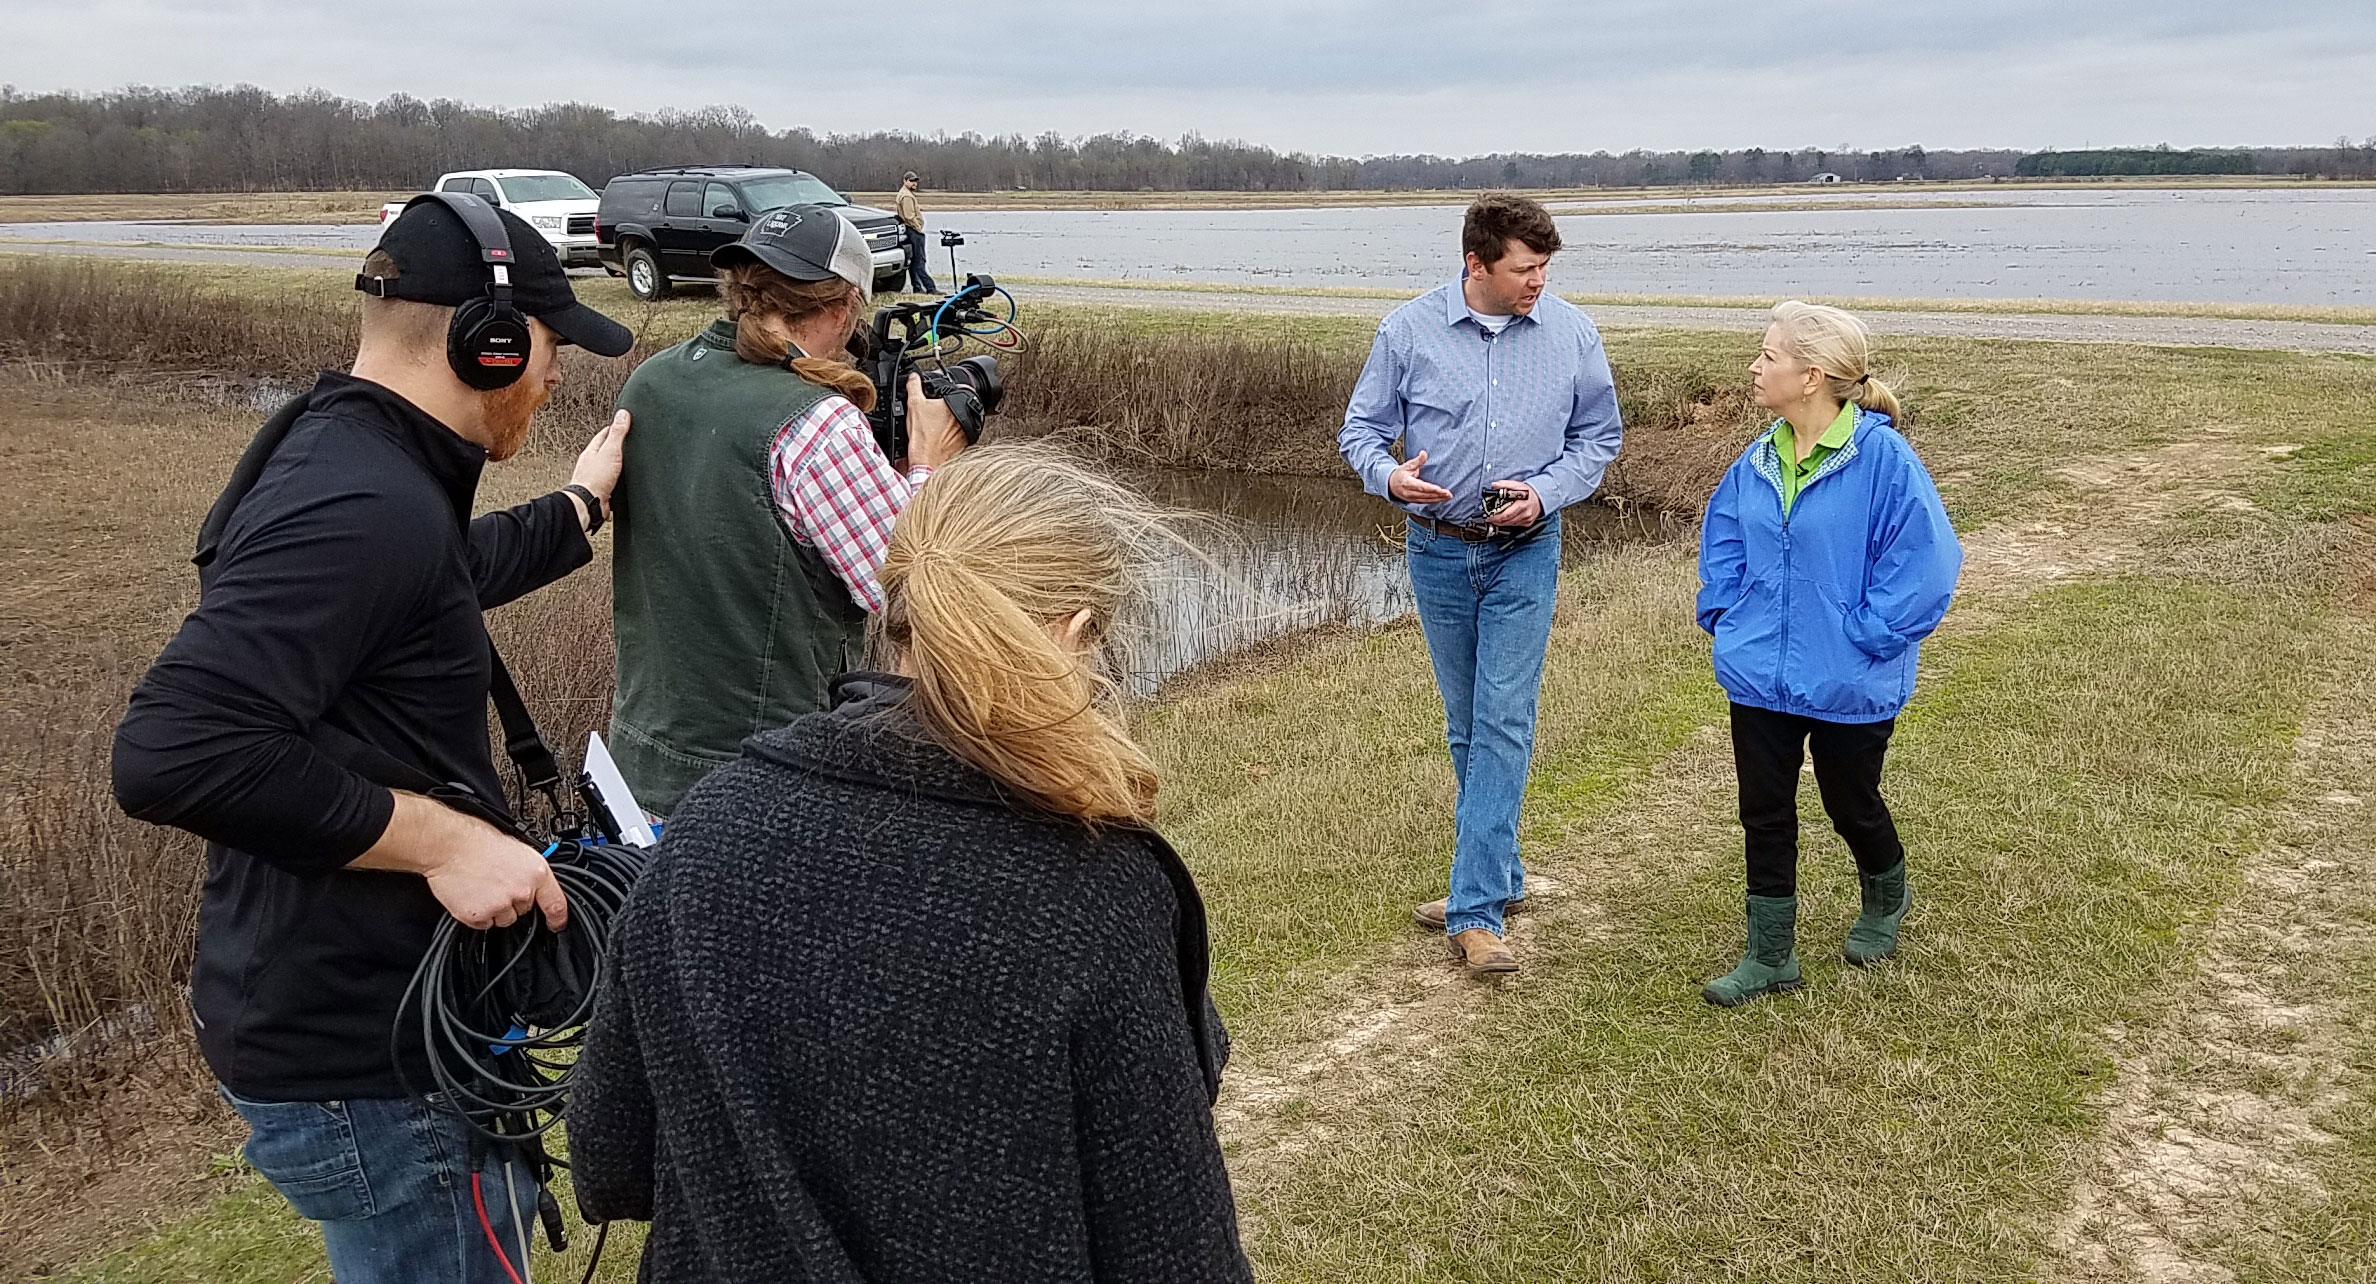 AR Sara-Moulton-Shoot-Sara-&-Eric-Vaught-being filmed by camera crew while walking outside near flooded rice field